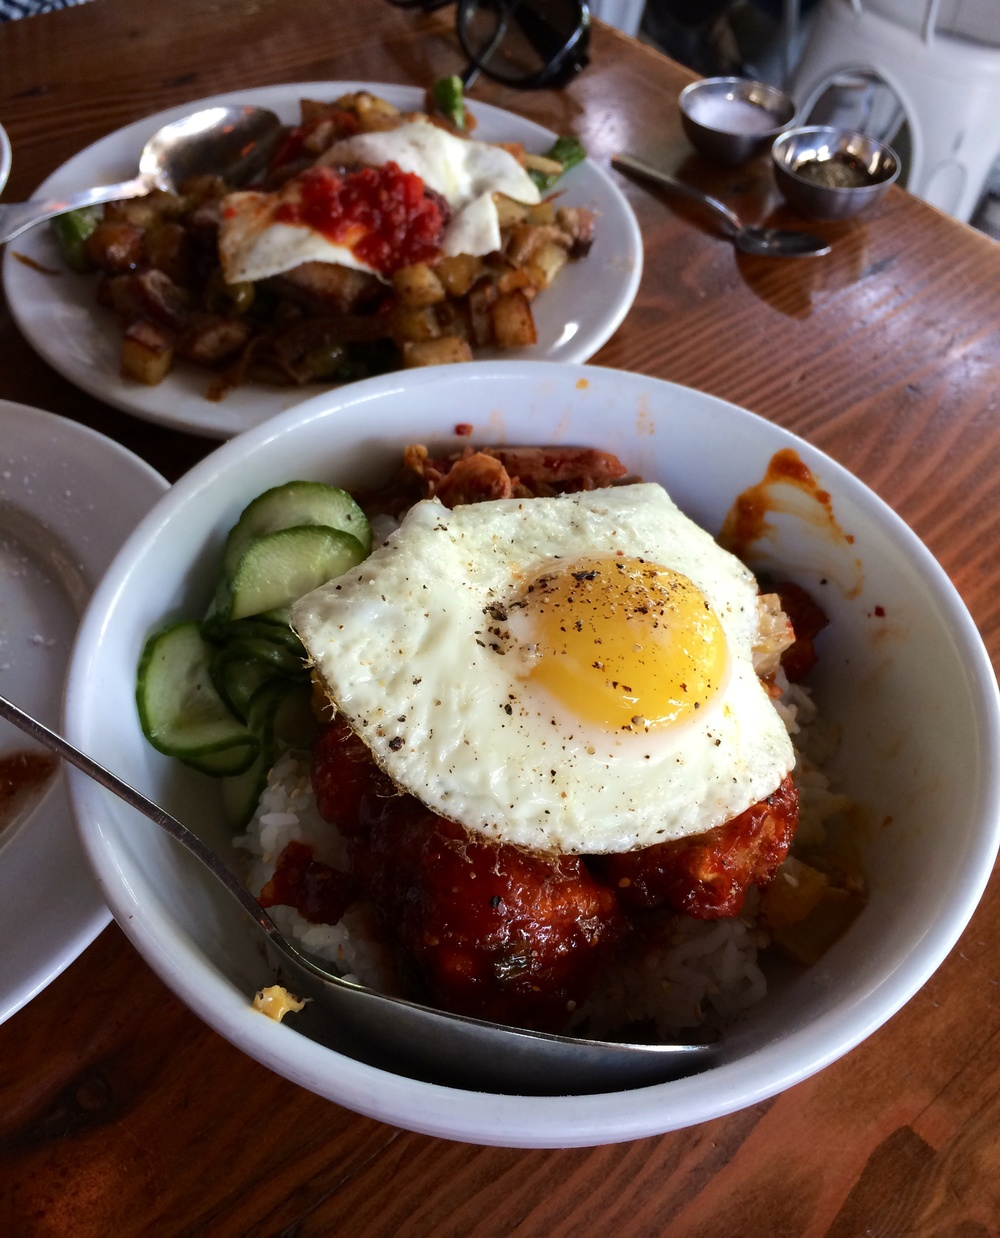 Korean Fried Chicken with rice, kimchi, and egg.